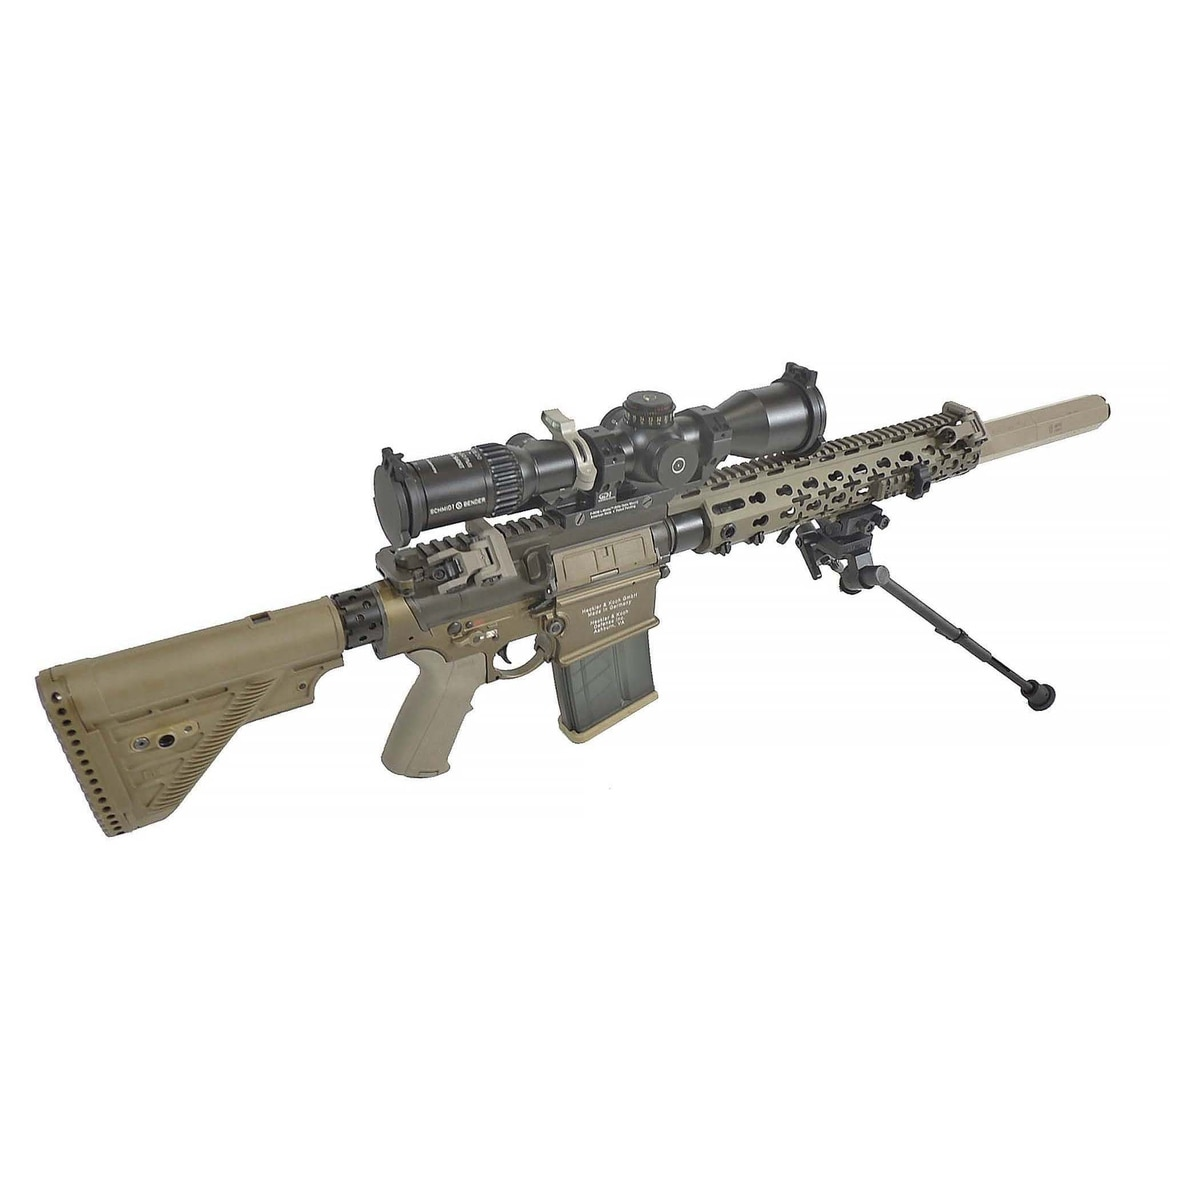 HK Confirms This Is The Armys New And Improved Sniper Rifle